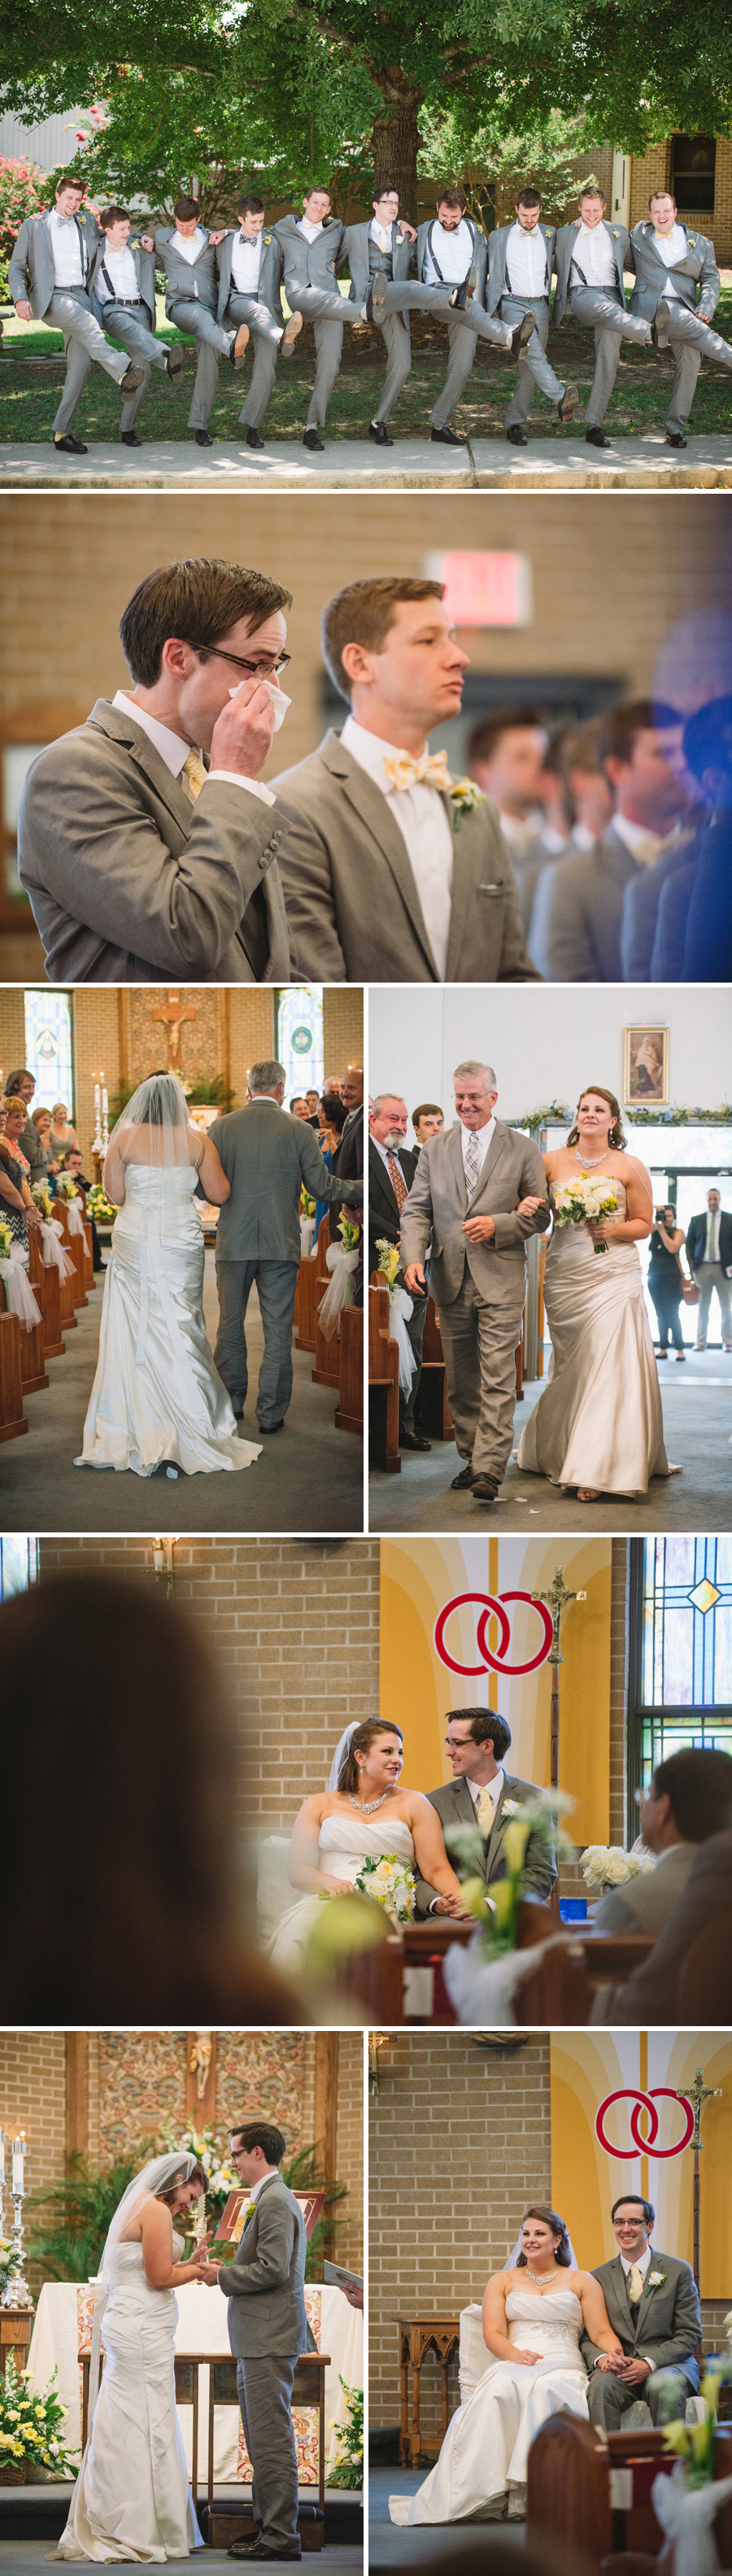 katie-julian-wedding-701-whaley